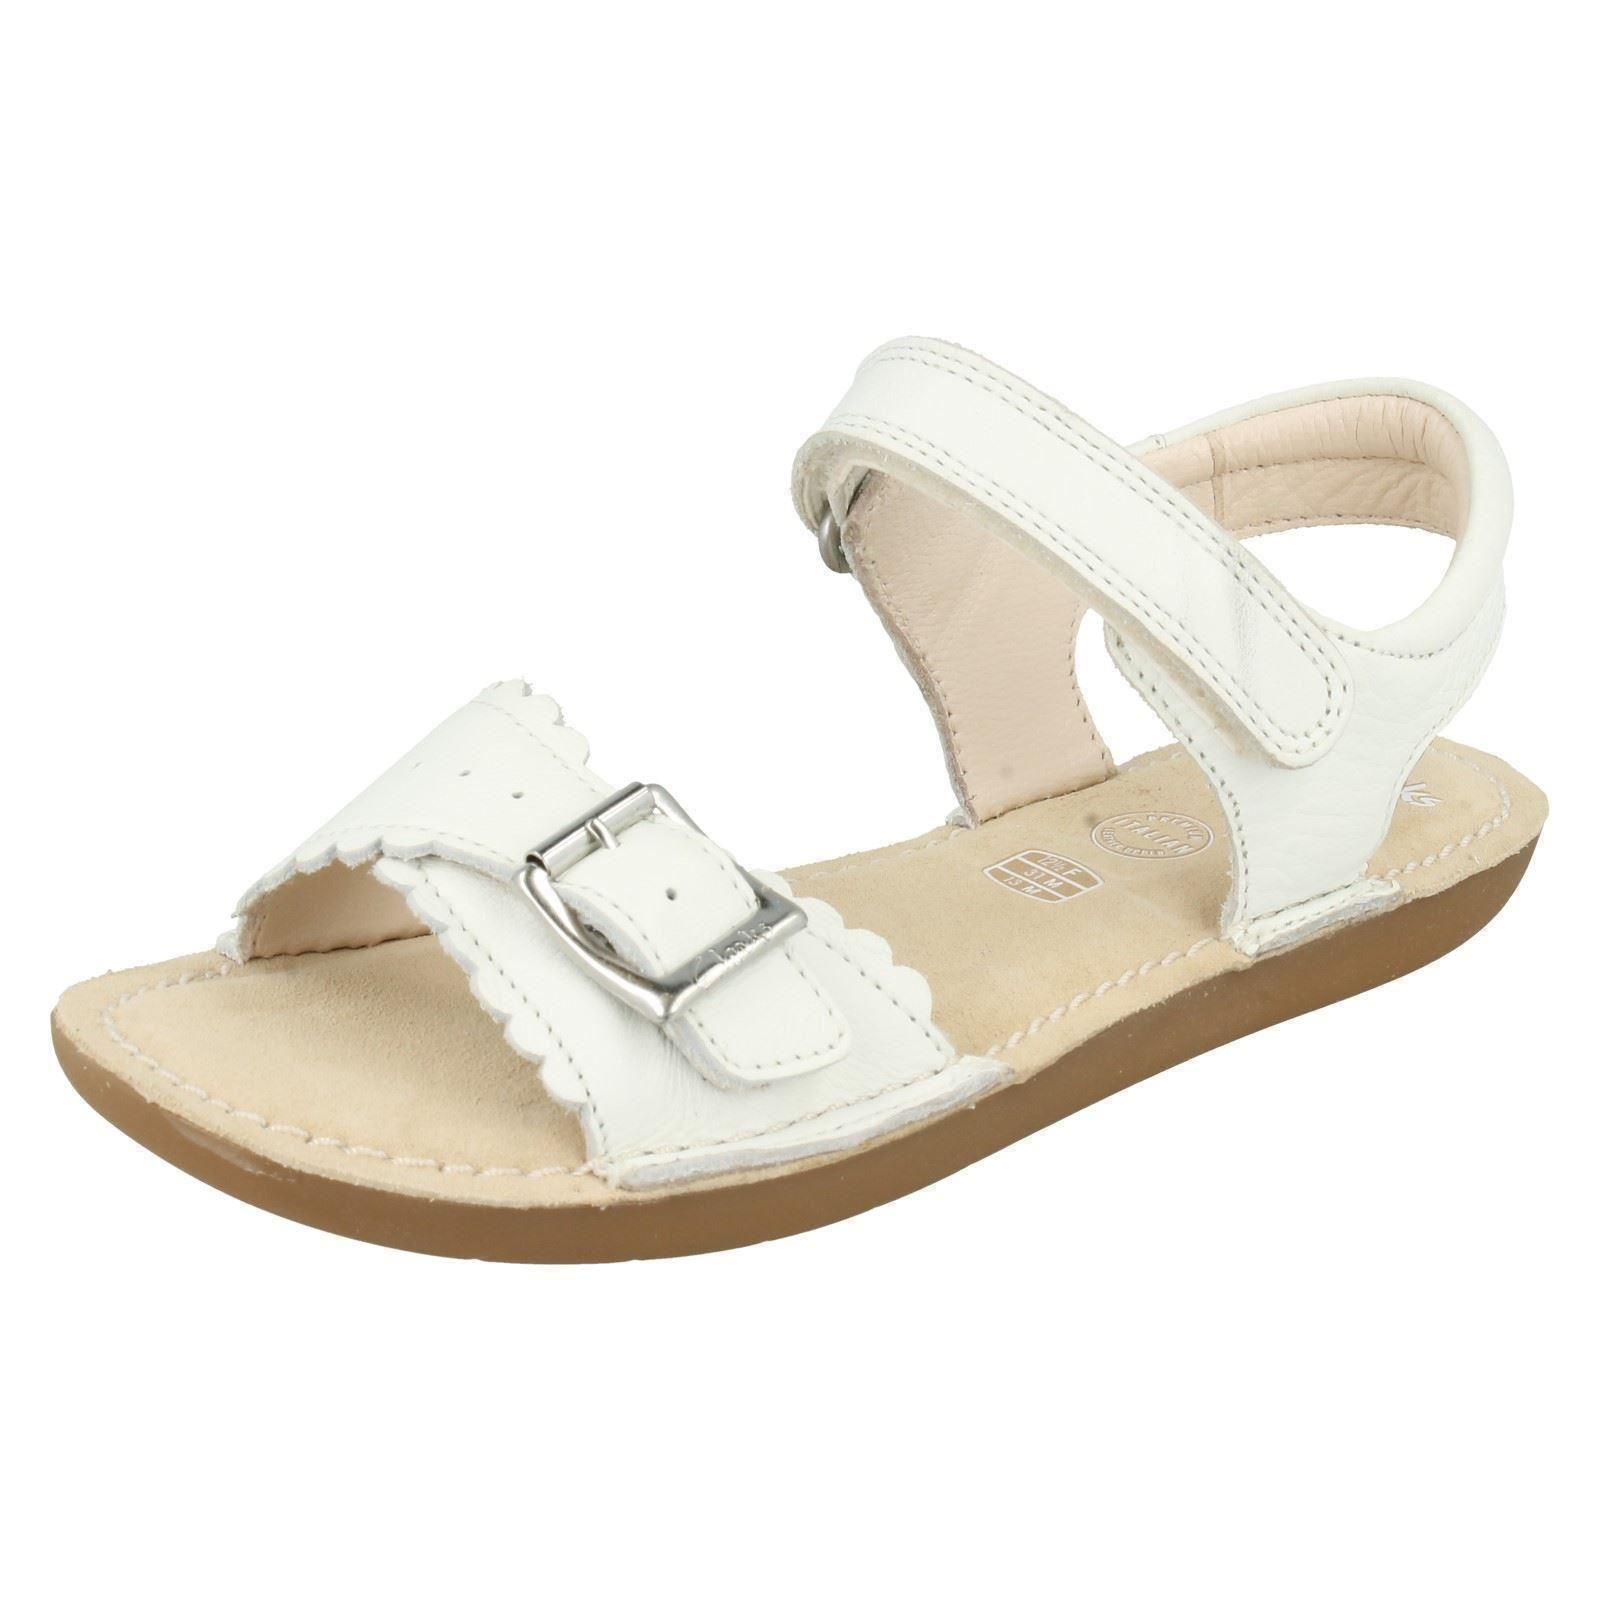 a4c60aab1e4 Girls Clarks Leather Buckle Strap Sandals Ivy Blossom UK 1.5 White F. About  this product. Picture 1 of 11  Picture 2 of 11 ...